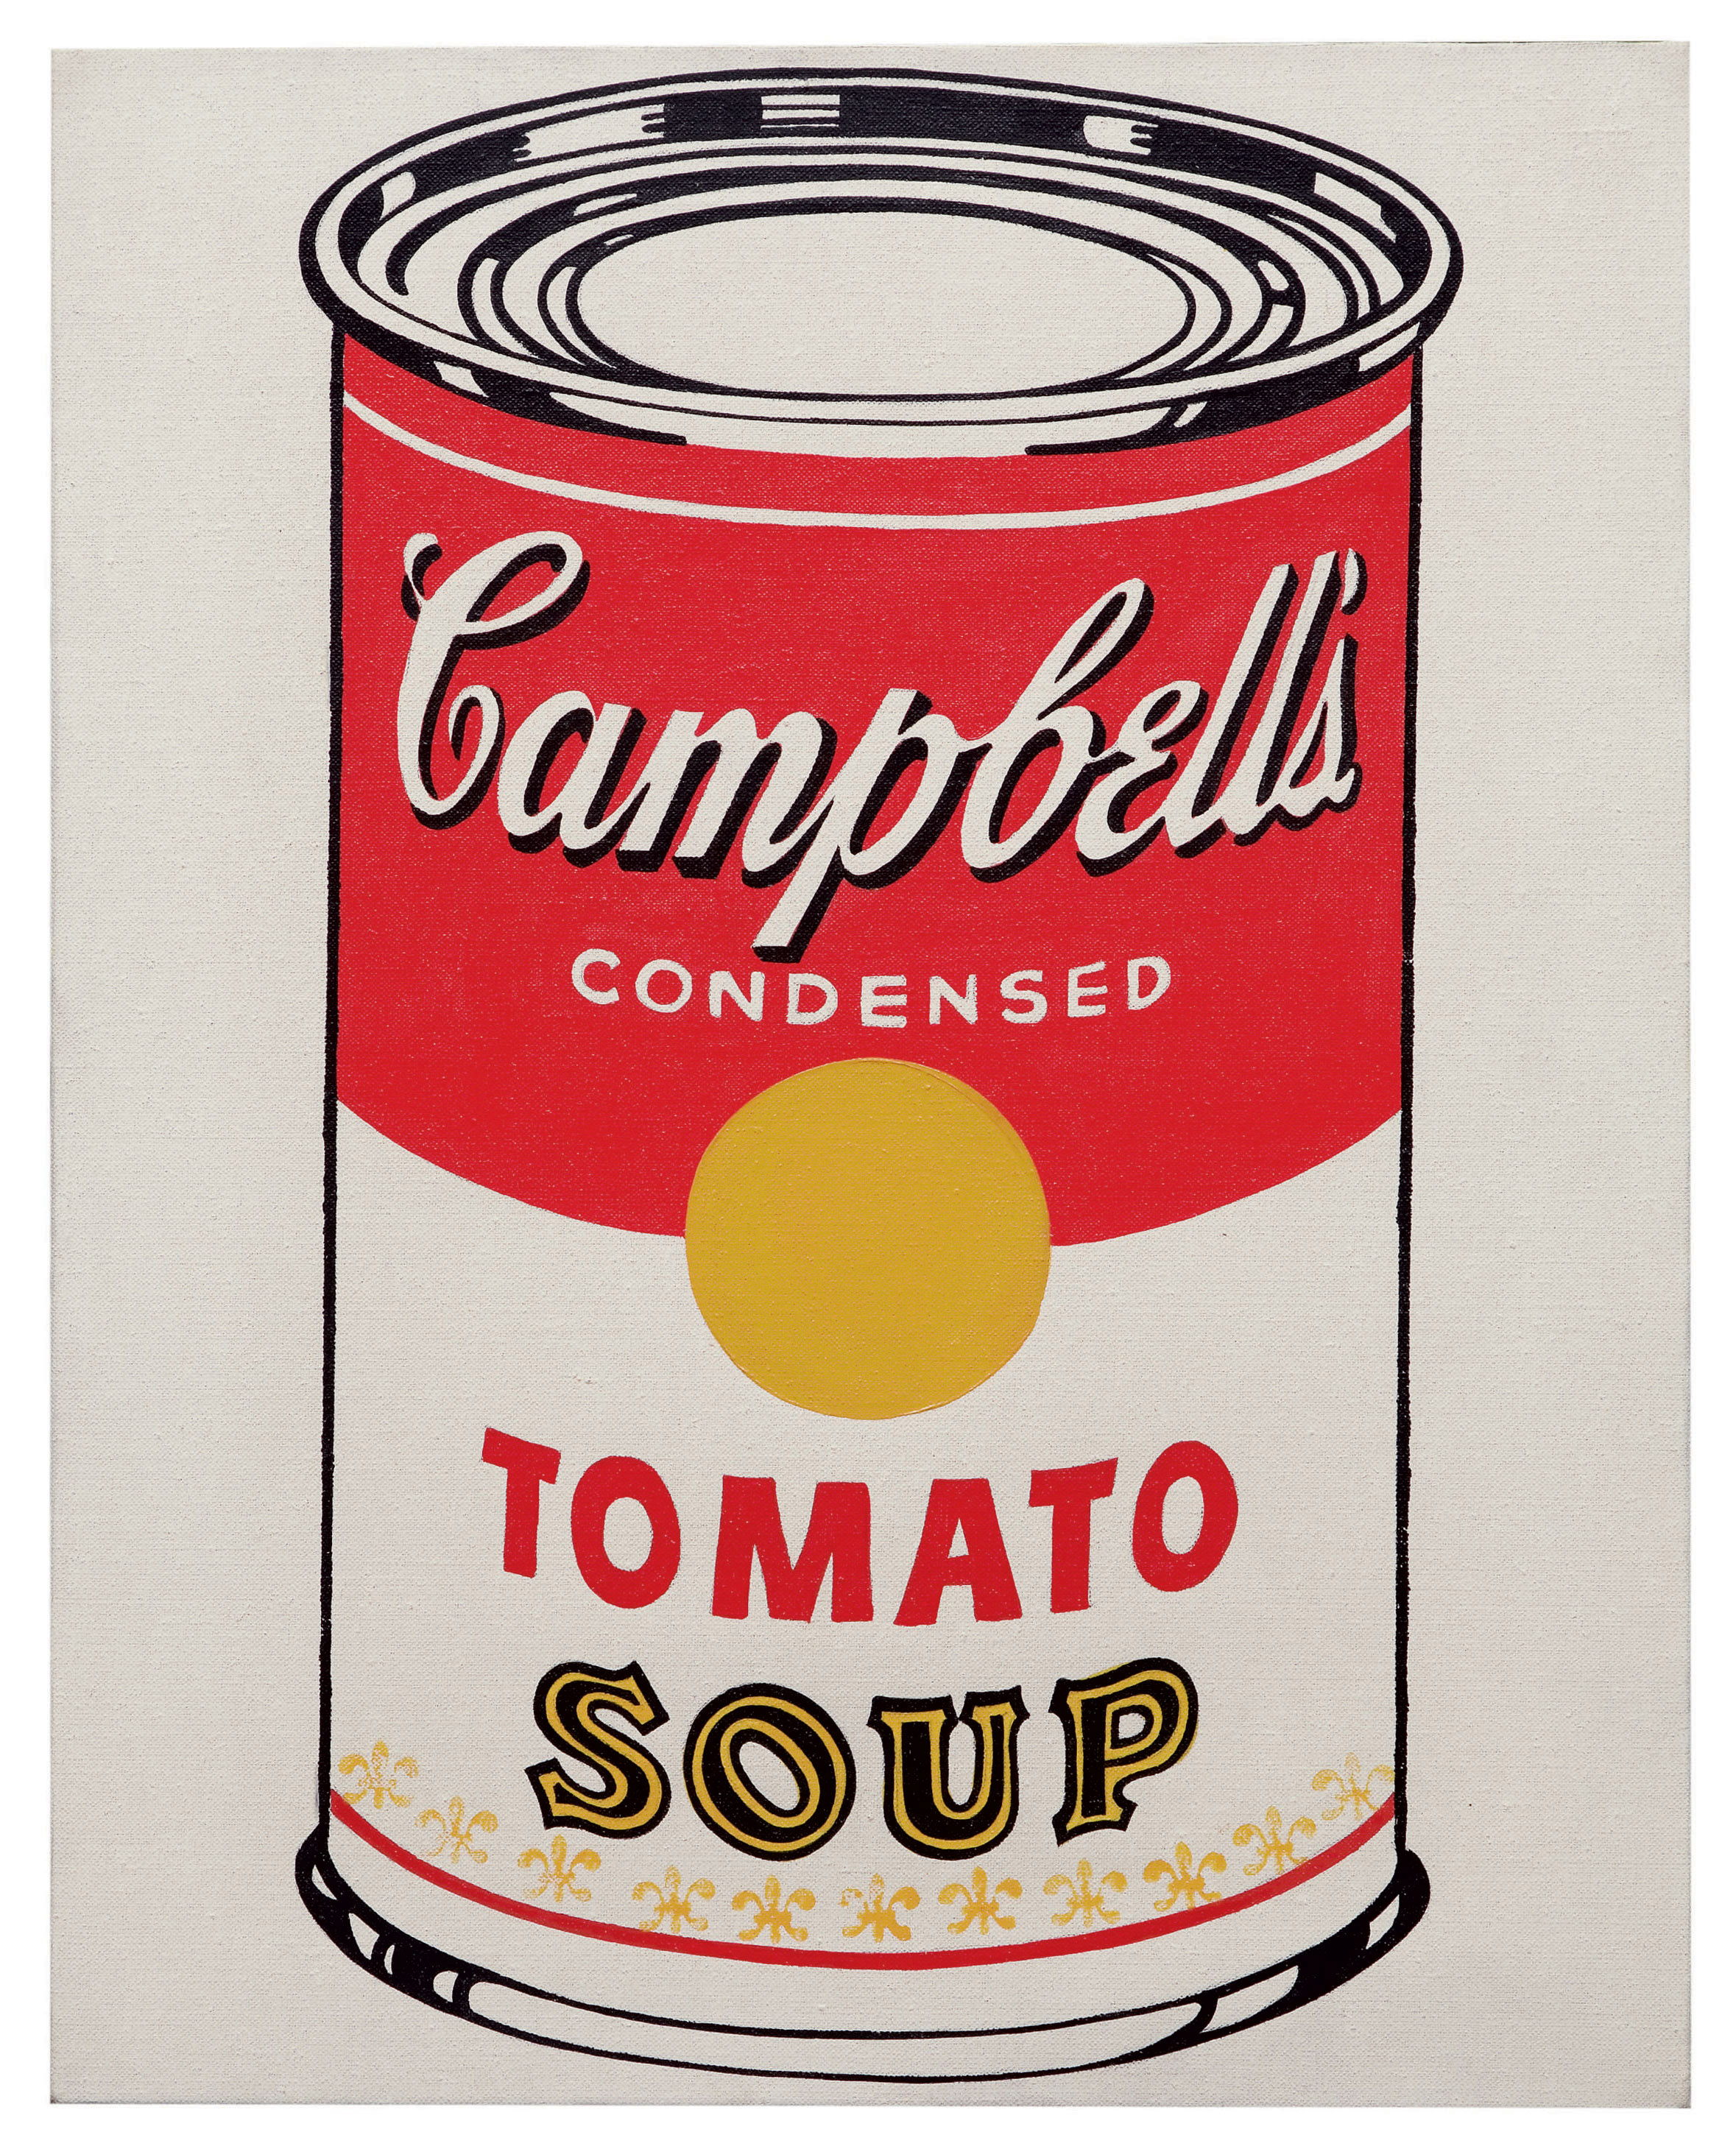 Andy Warhol, Cambell's Soup Can (Tomato), 1928-1987